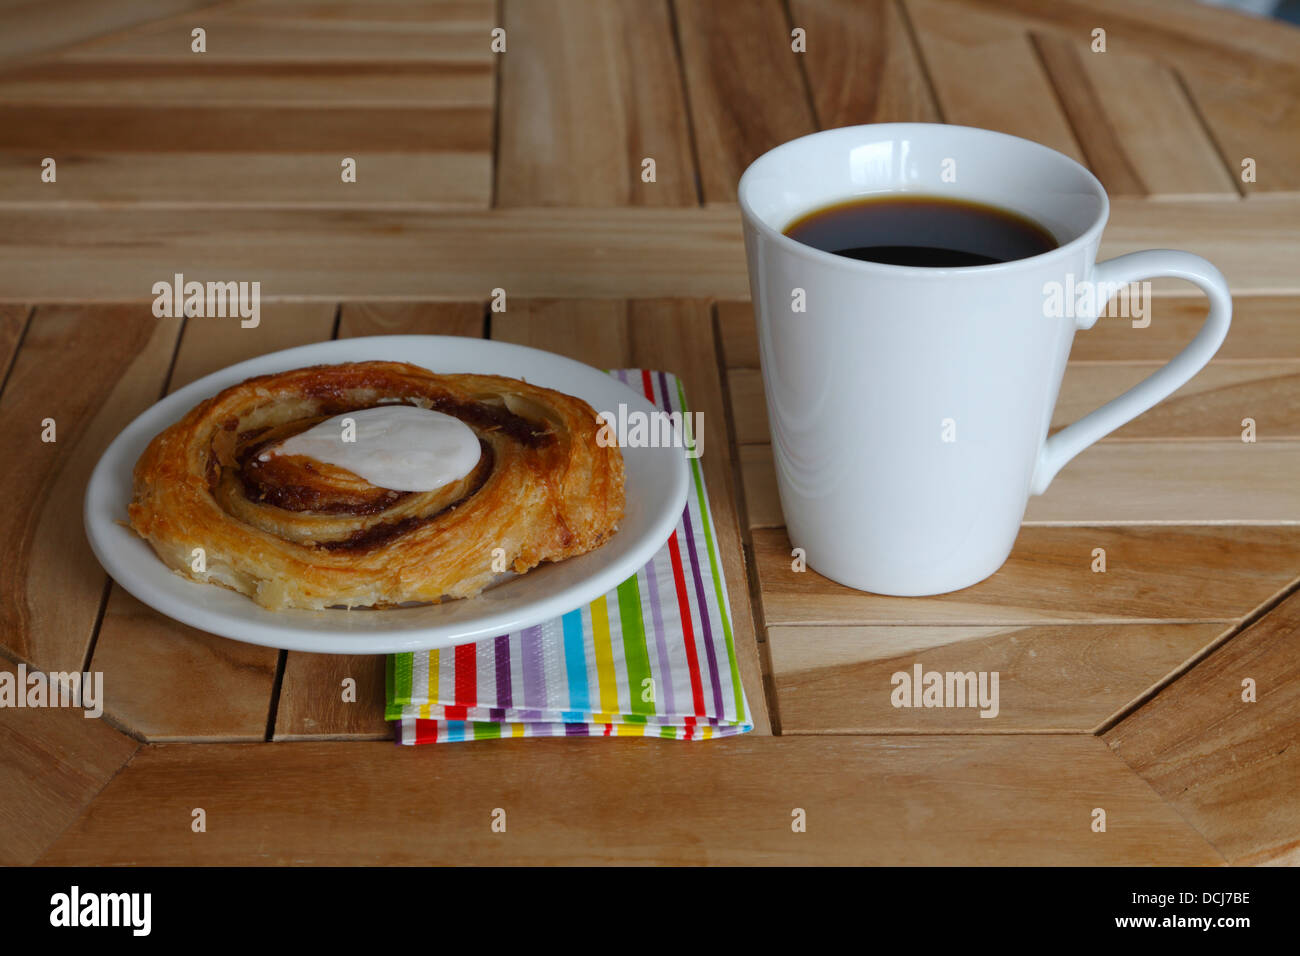 Original Danish pastry of laminated yeast-leavened dough - flaky and delicate crust and a mug of coffee on a café - Stock Image